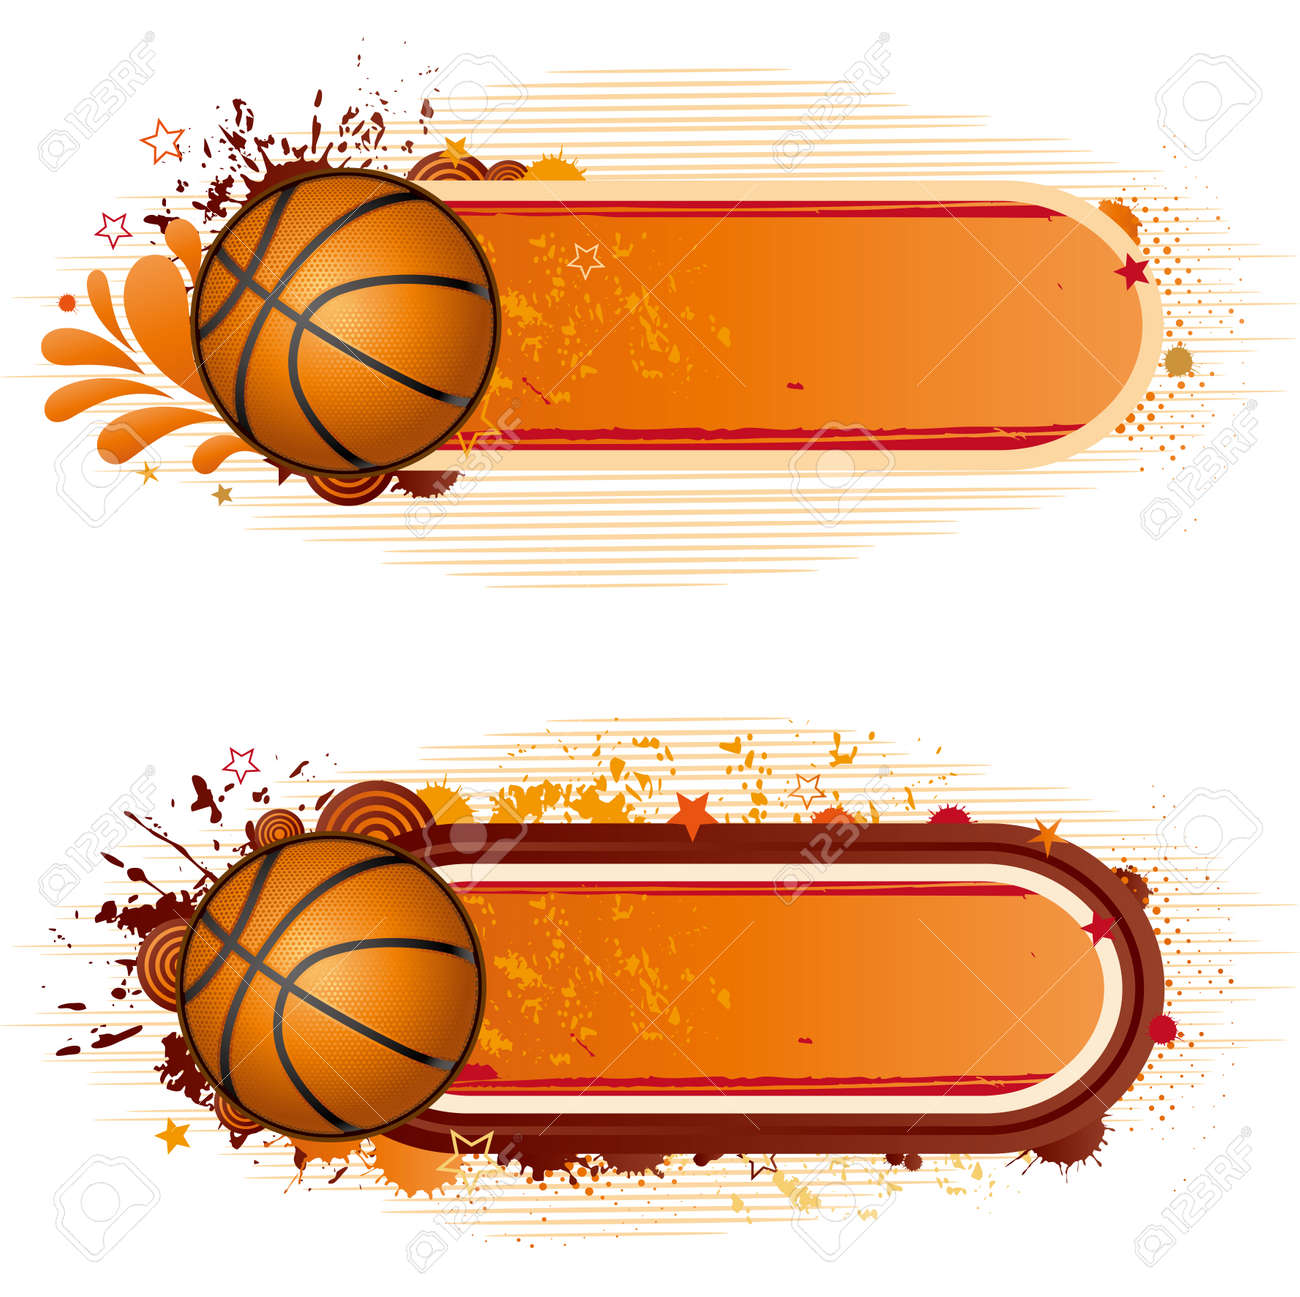 Design Elements-basketball Royalty Free Cliparts, Vectors, And Stock ...